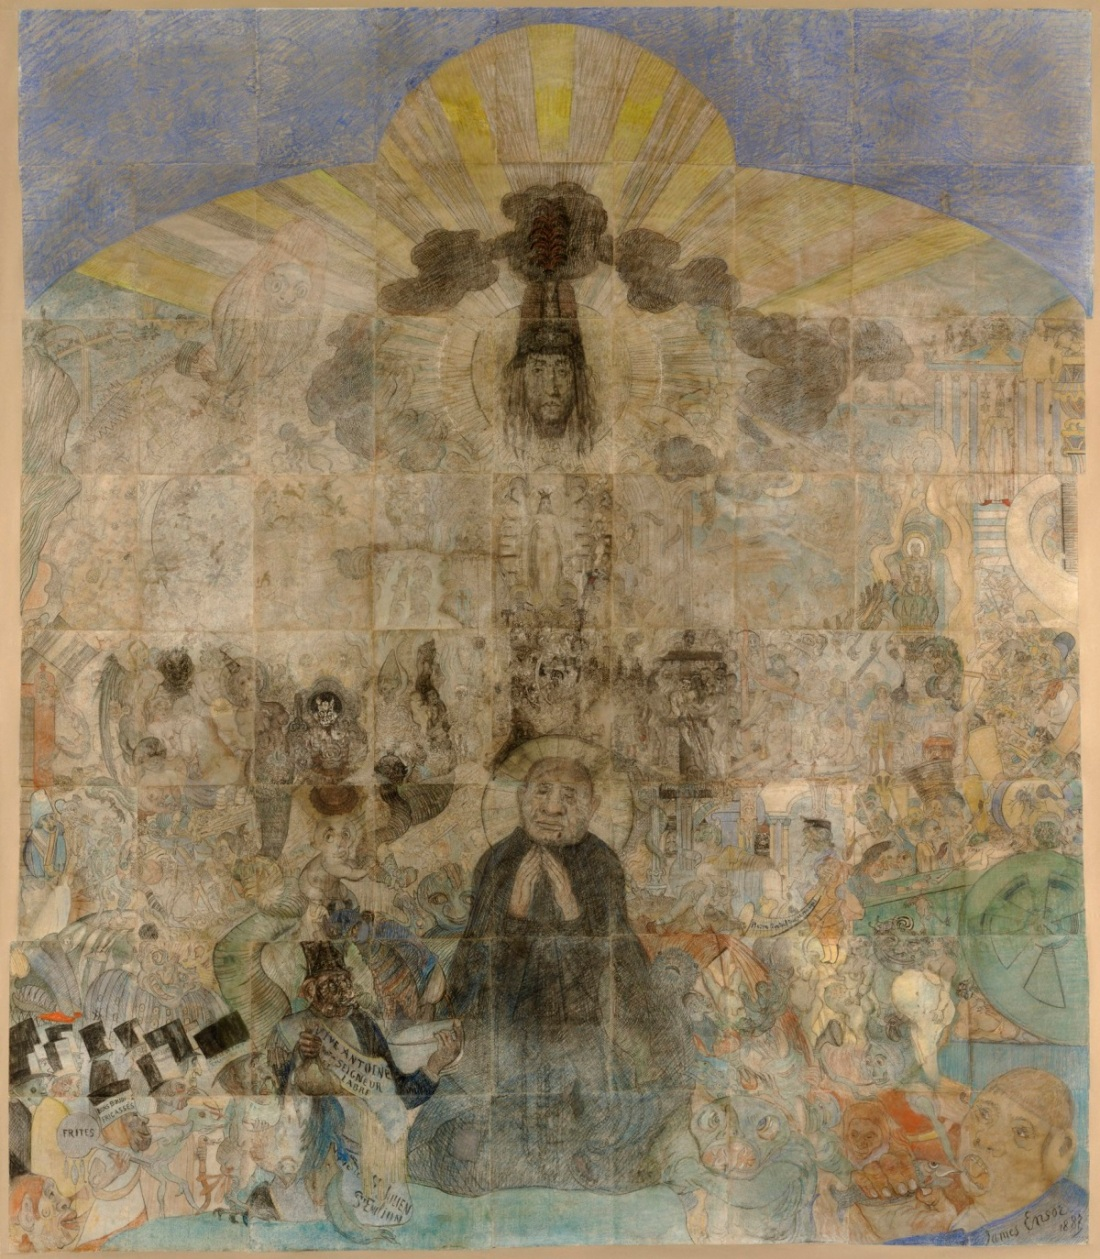 James Ensor, The Temptation of St. Anthony, 1887.